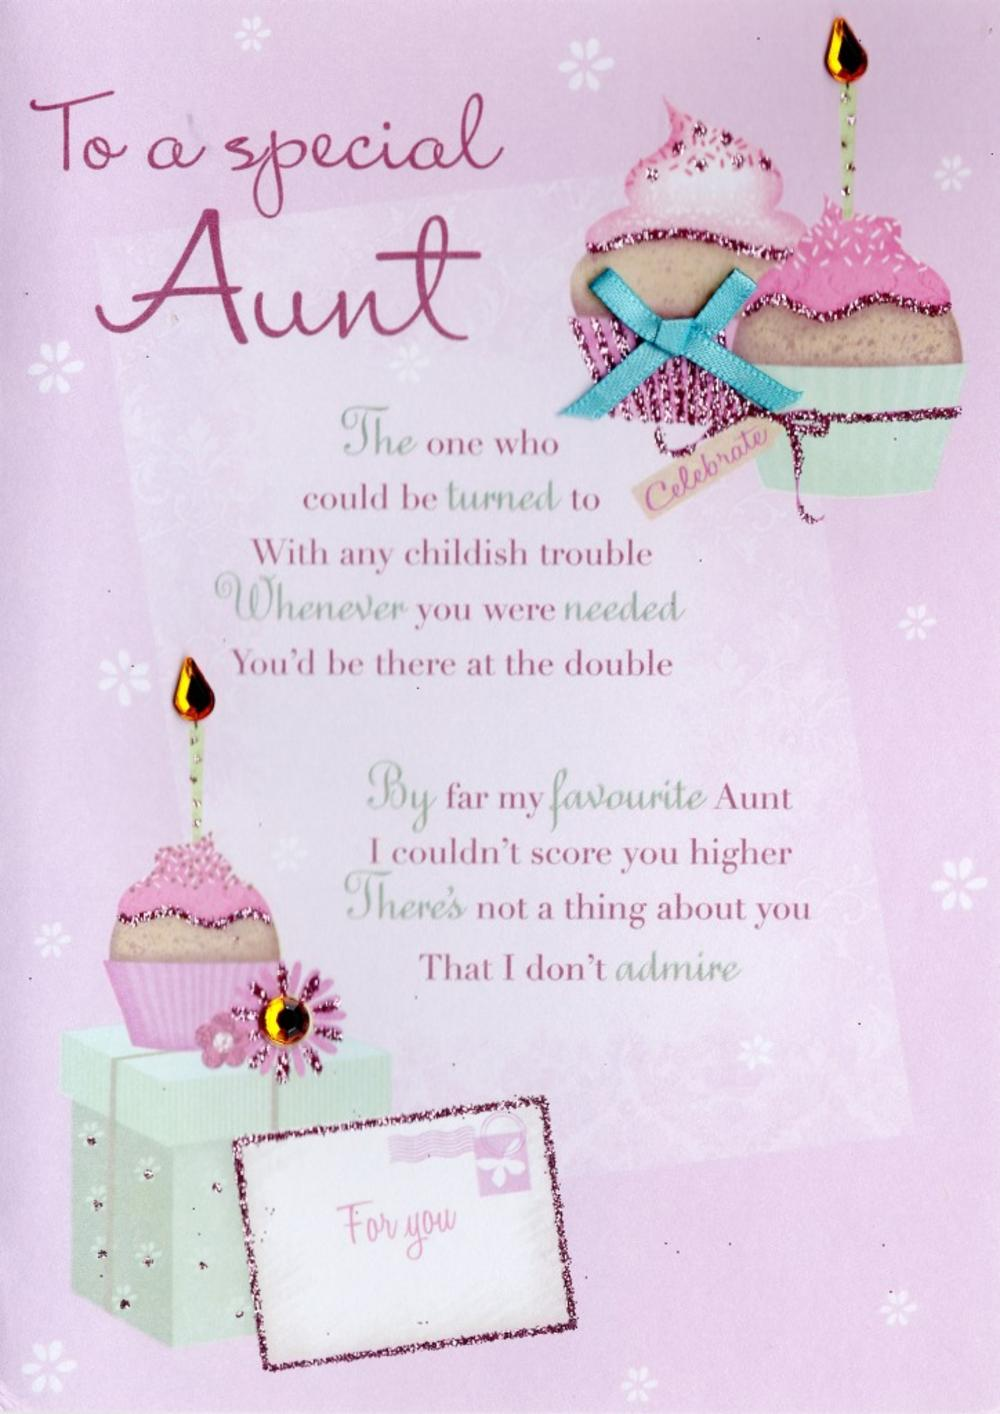 Special aunt birthday greeting card cards love kates special aunt birthday greeting card bookmarktalkfo